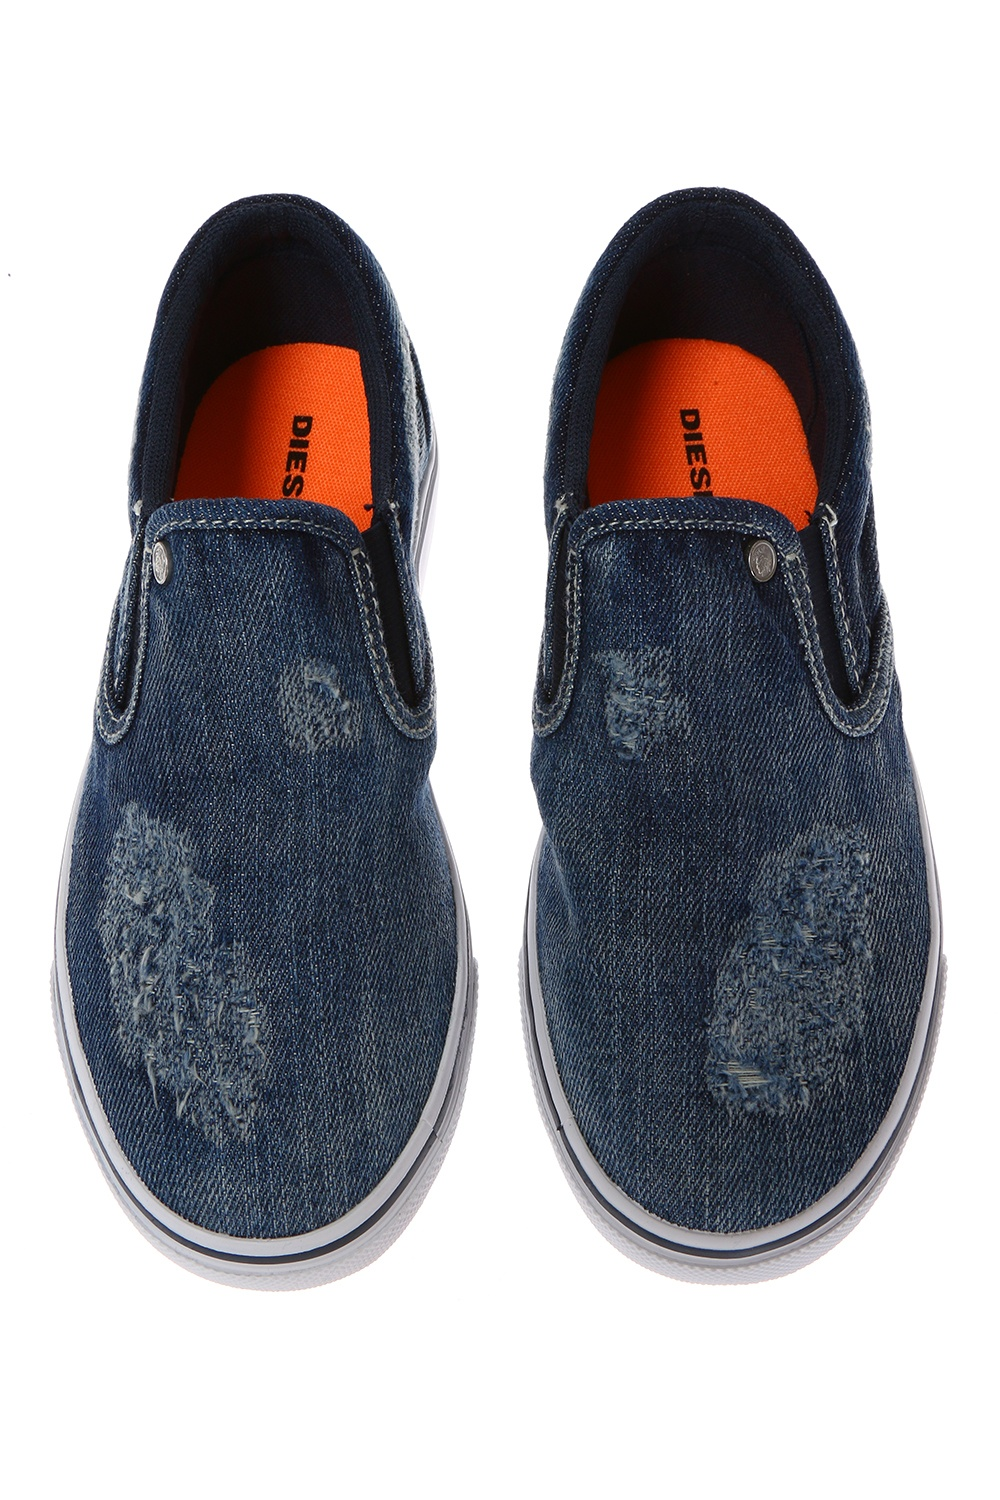 Diesel Kids Denim slip-on sneakers